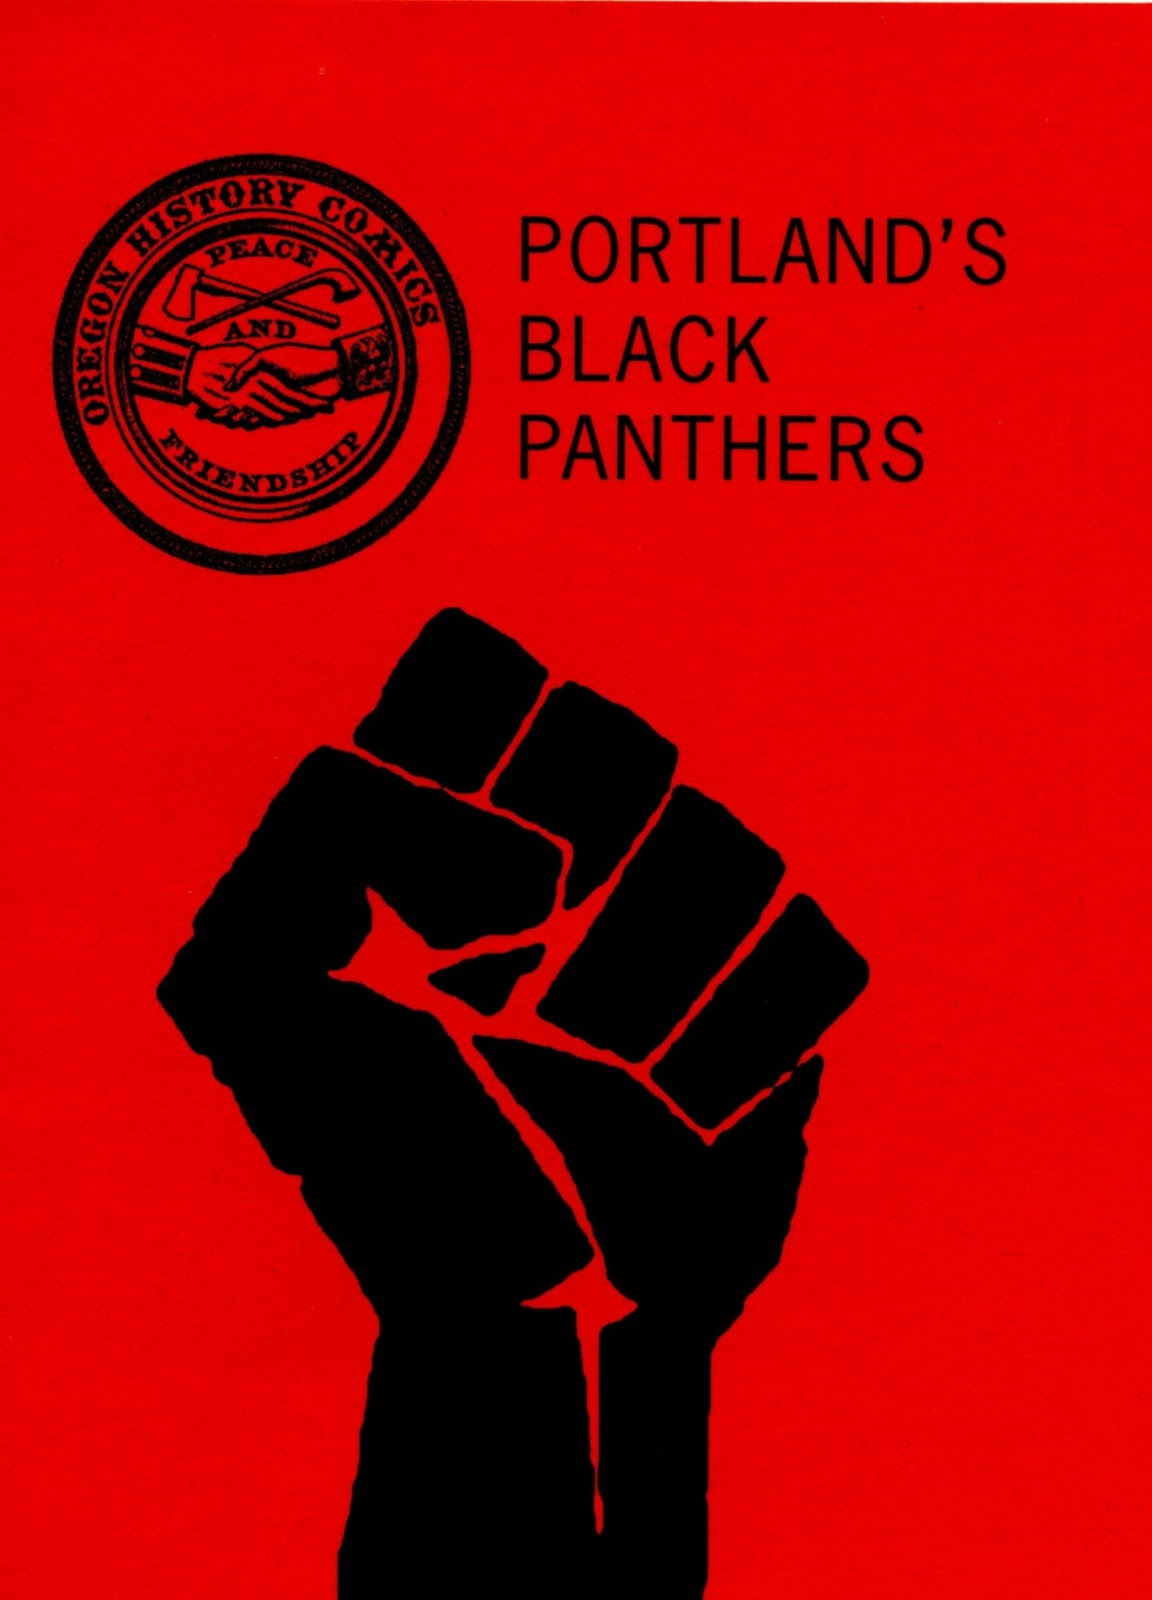 black panther organization essay The lowndes county freedom organization (lcdo) was established by stokely carmichael alabama in 1964 this organization later changed its name to the black panther party in.